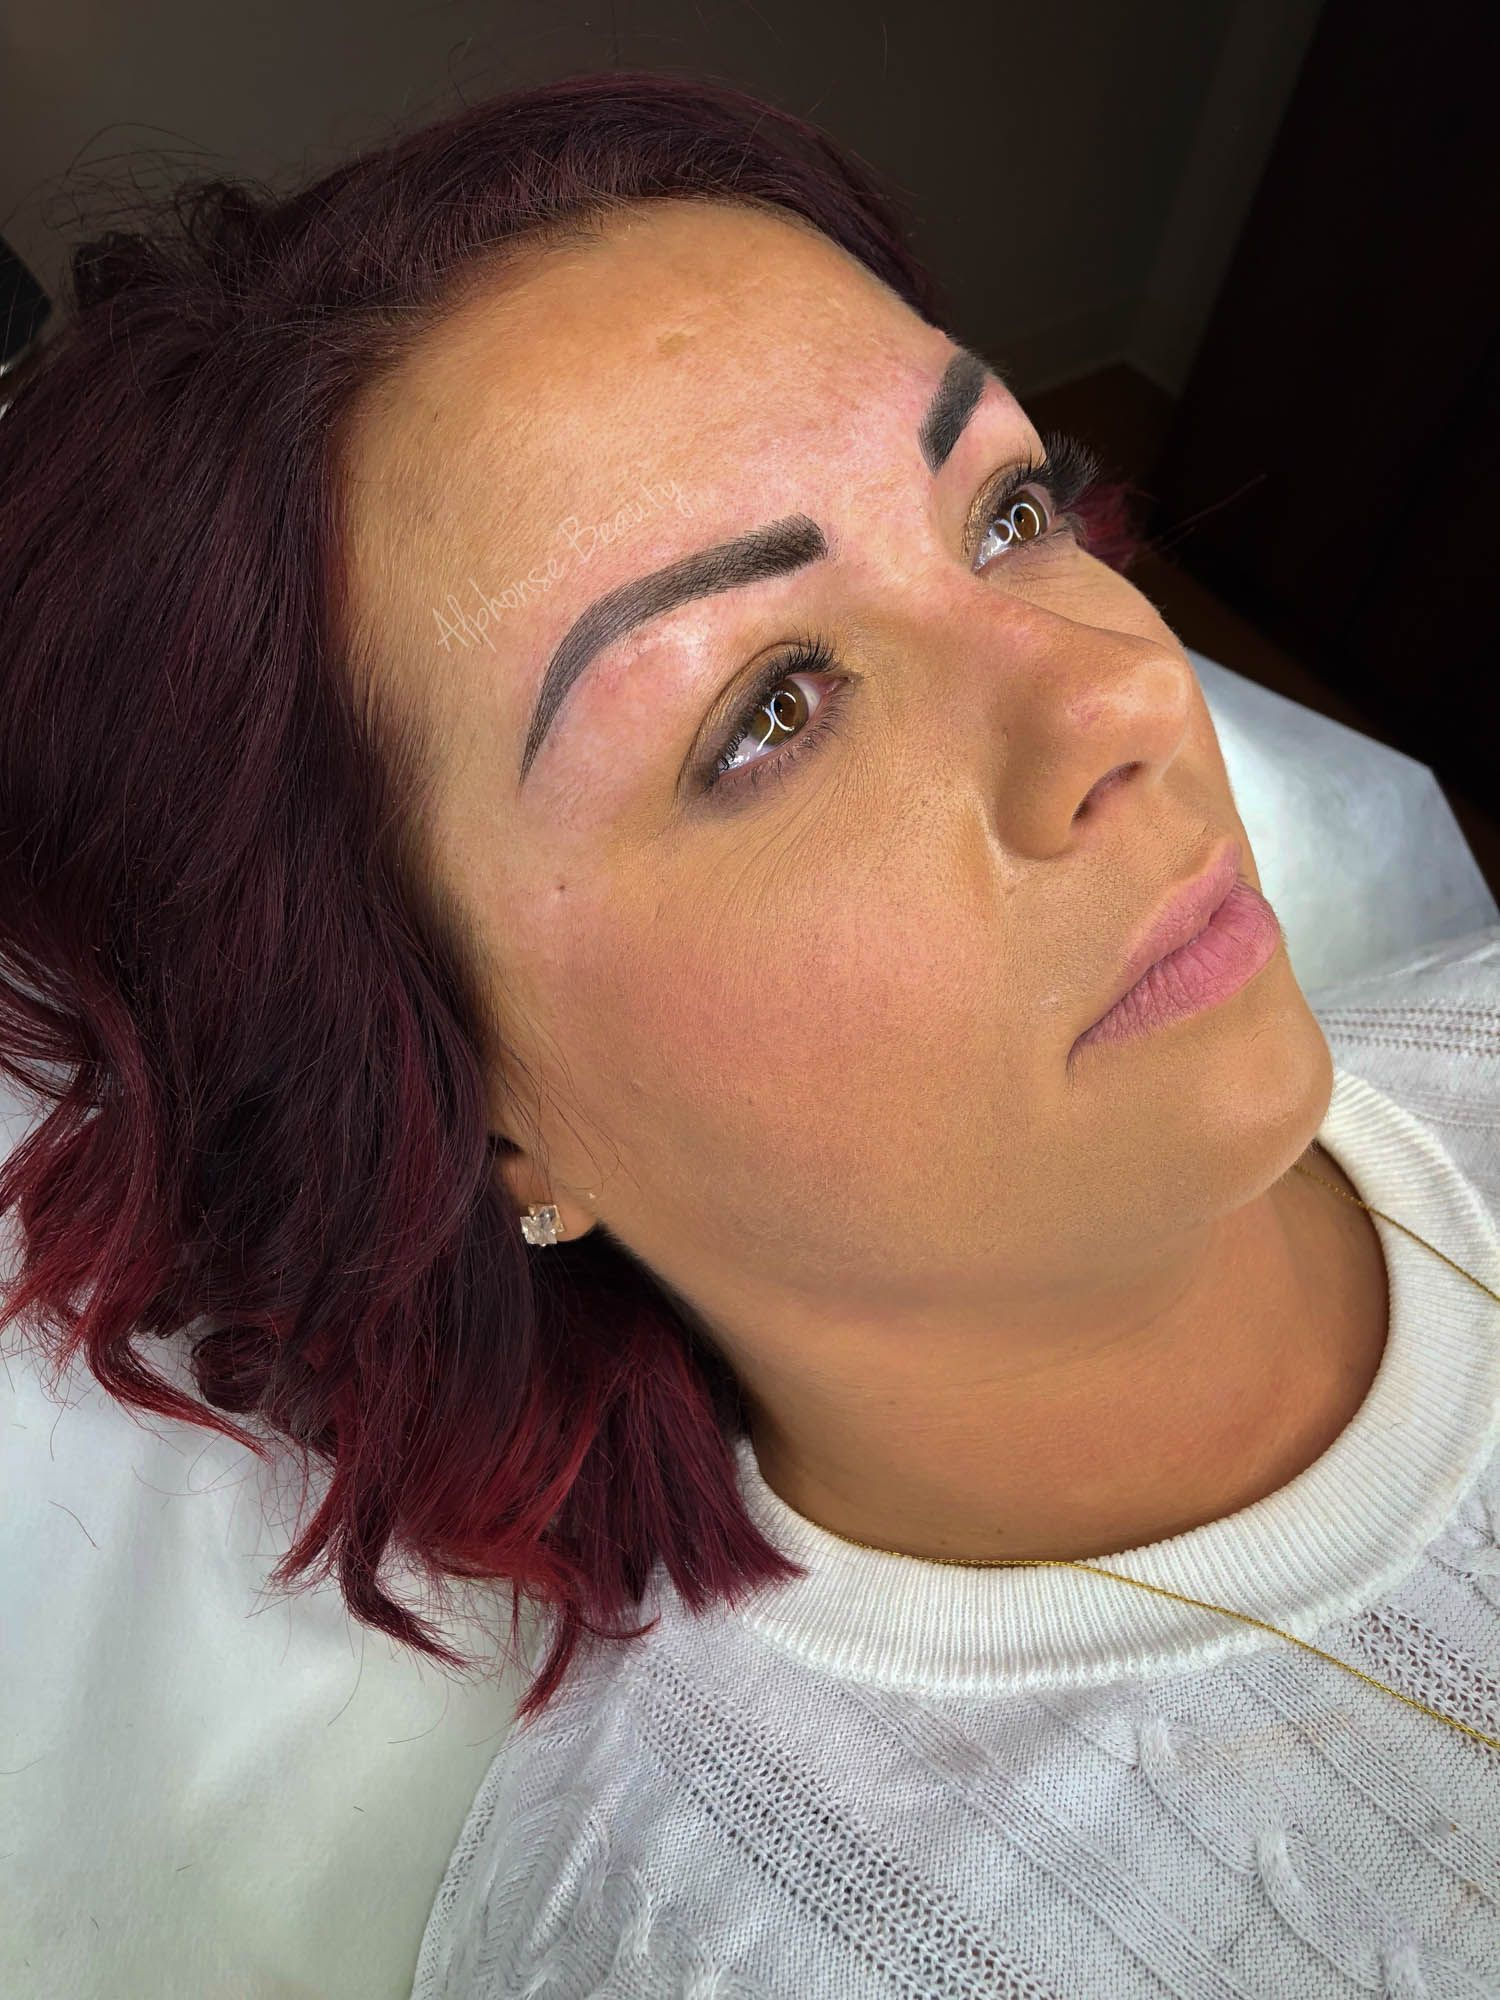 Bold and filled in eyebrows after microblading procedure